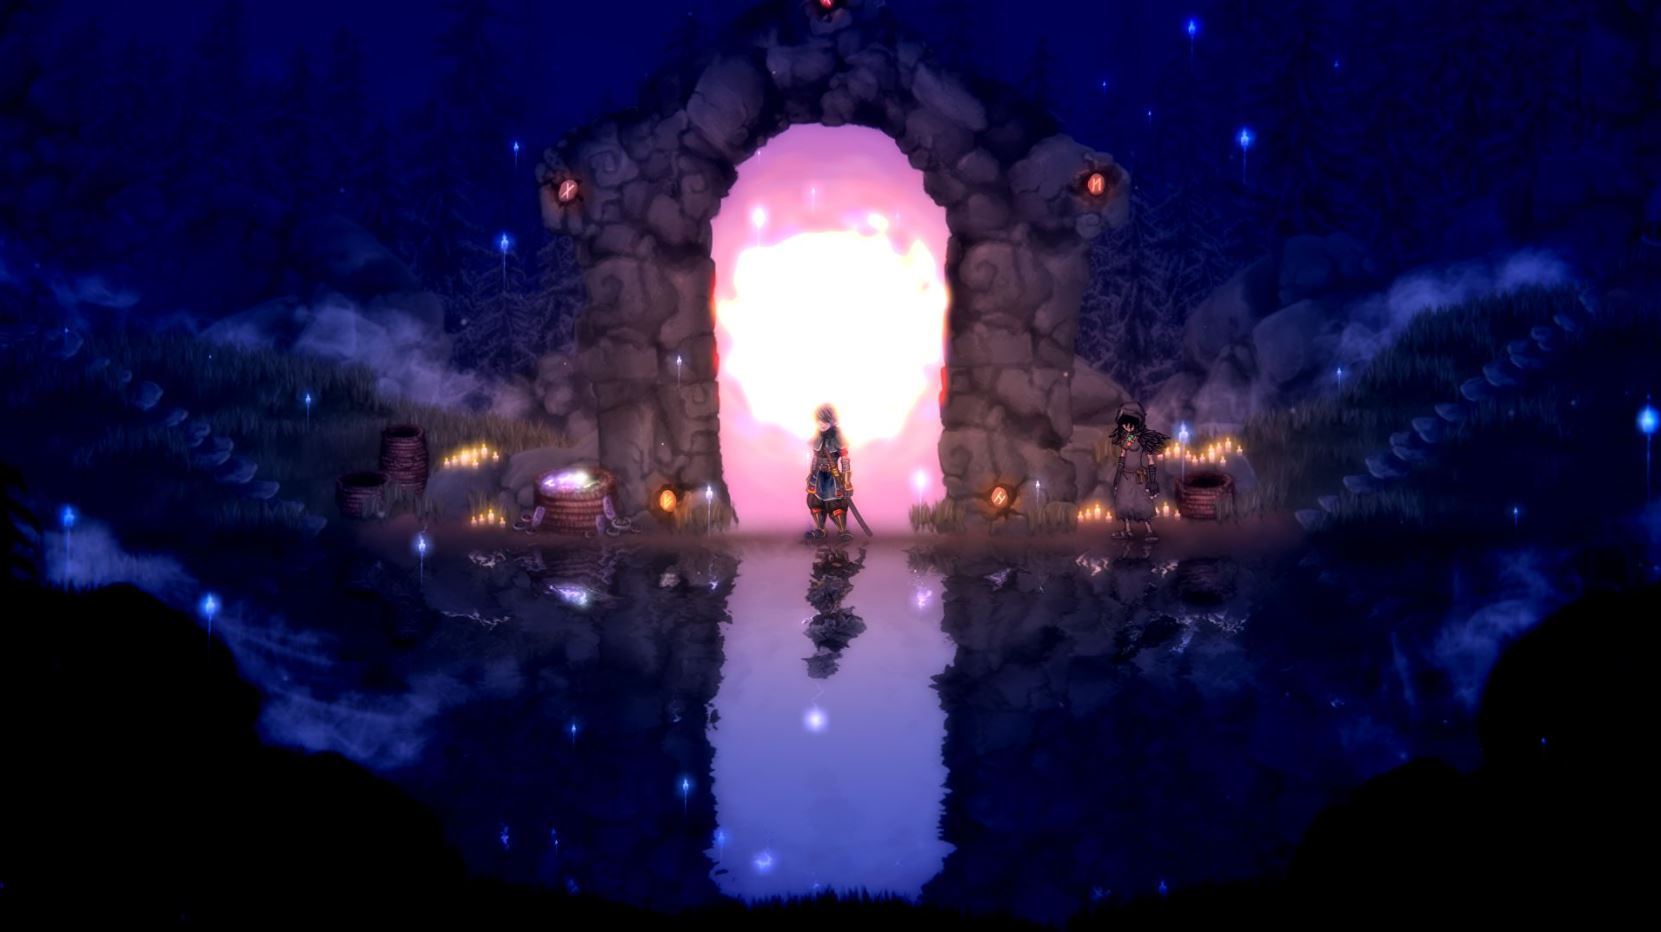 stunning-metroidvania-indie-salt-and-sacrifice-announced-for-ps4-ps5-release-in-2022